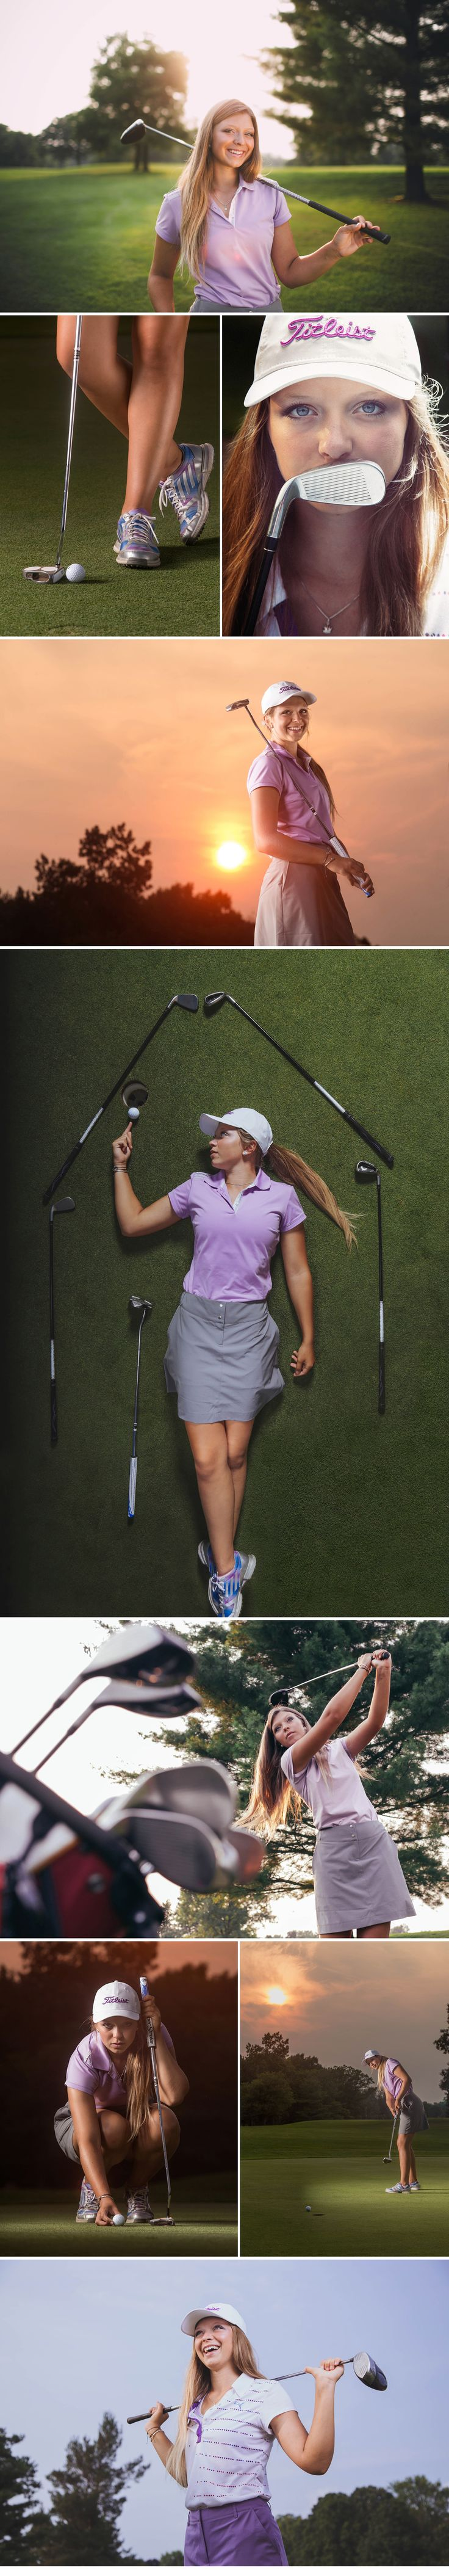 Golf senior photo session ideas for girls. Pop Mod Photo in Flint, MI. www.popmodphoto.com #seniorphoto #golf #portrait